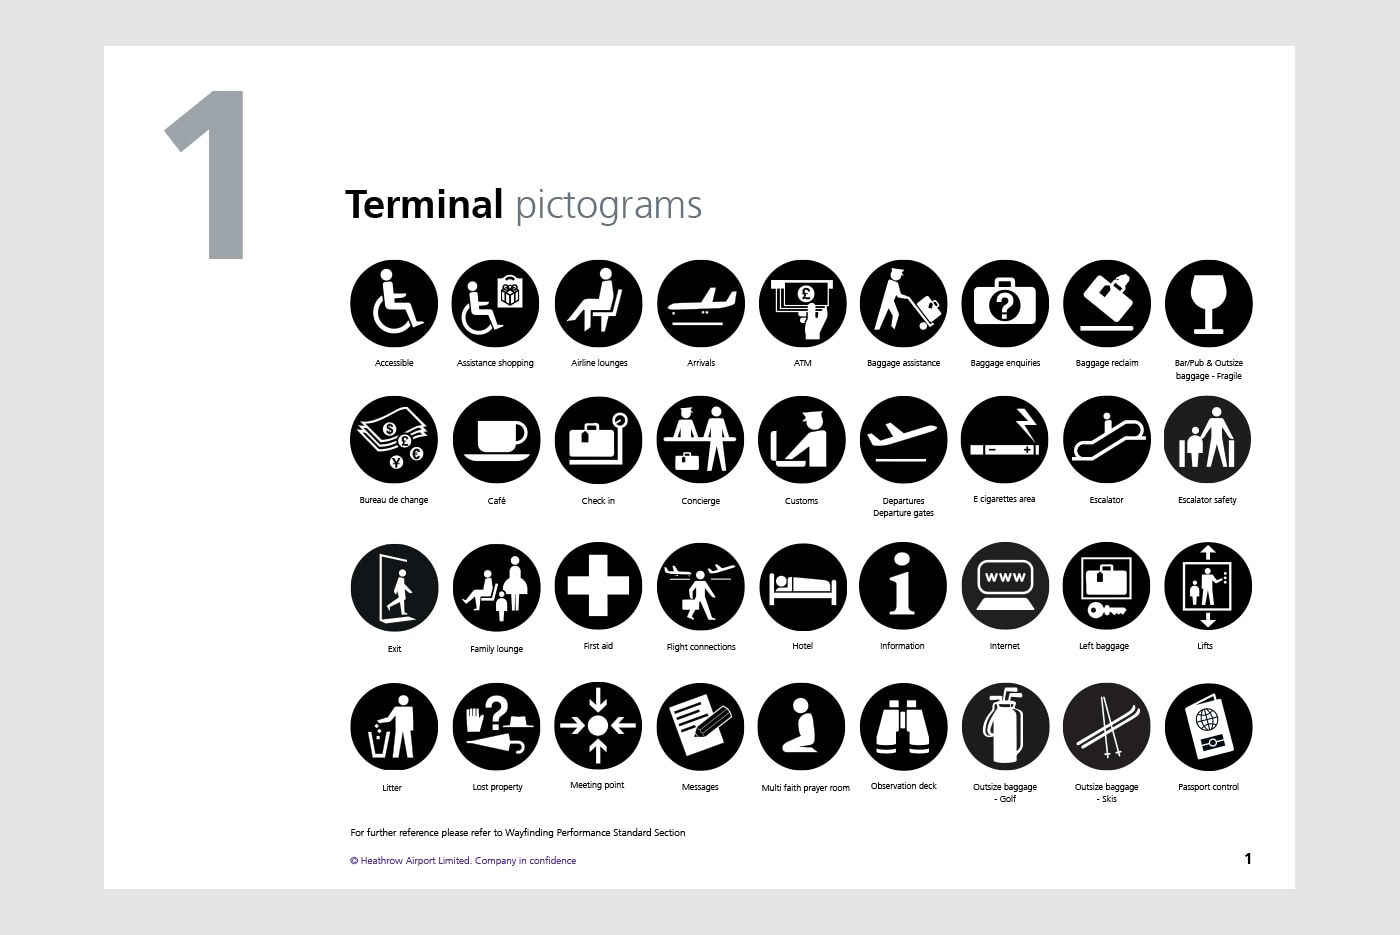 Heathrow Airport pictograms